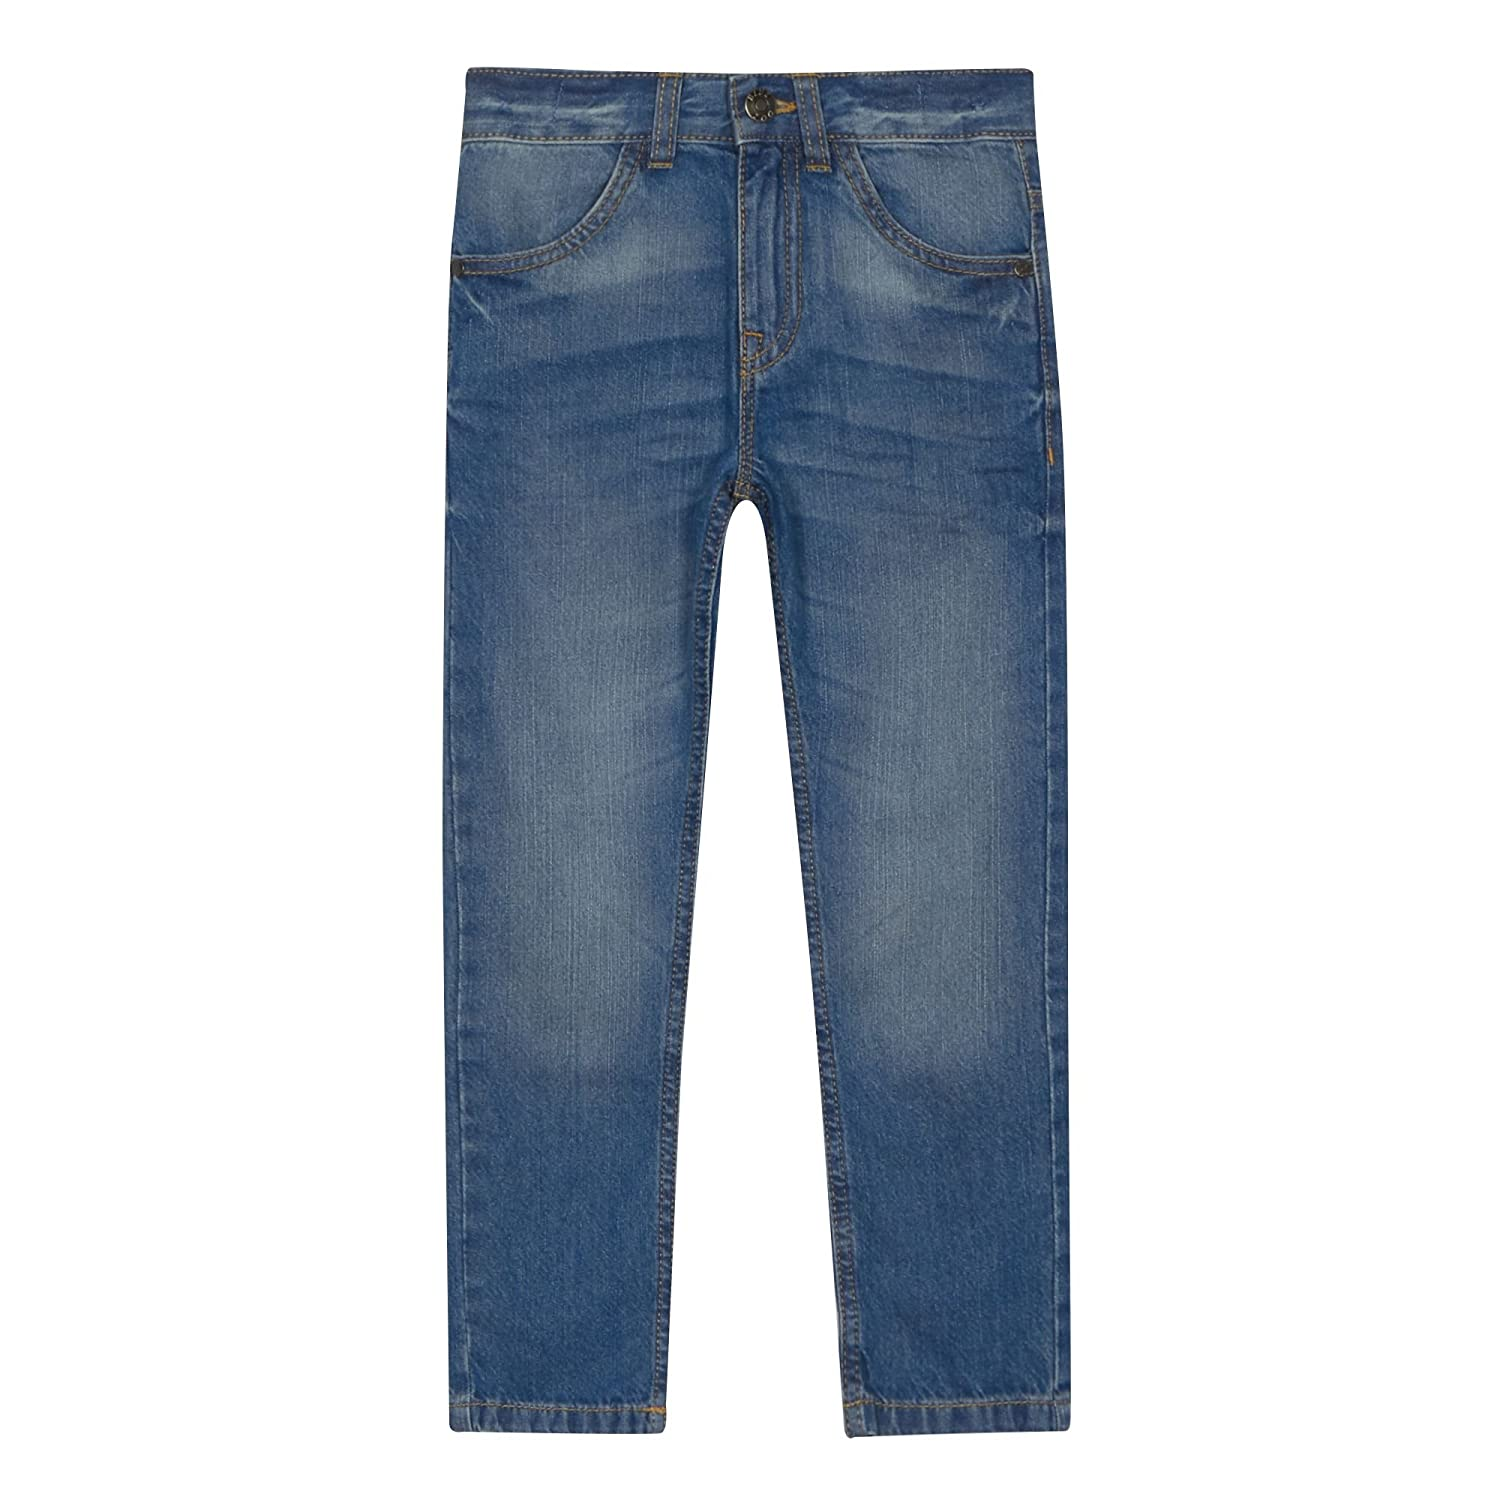 bluezoo Kids 'Boys' Blue Light Wash Jeans